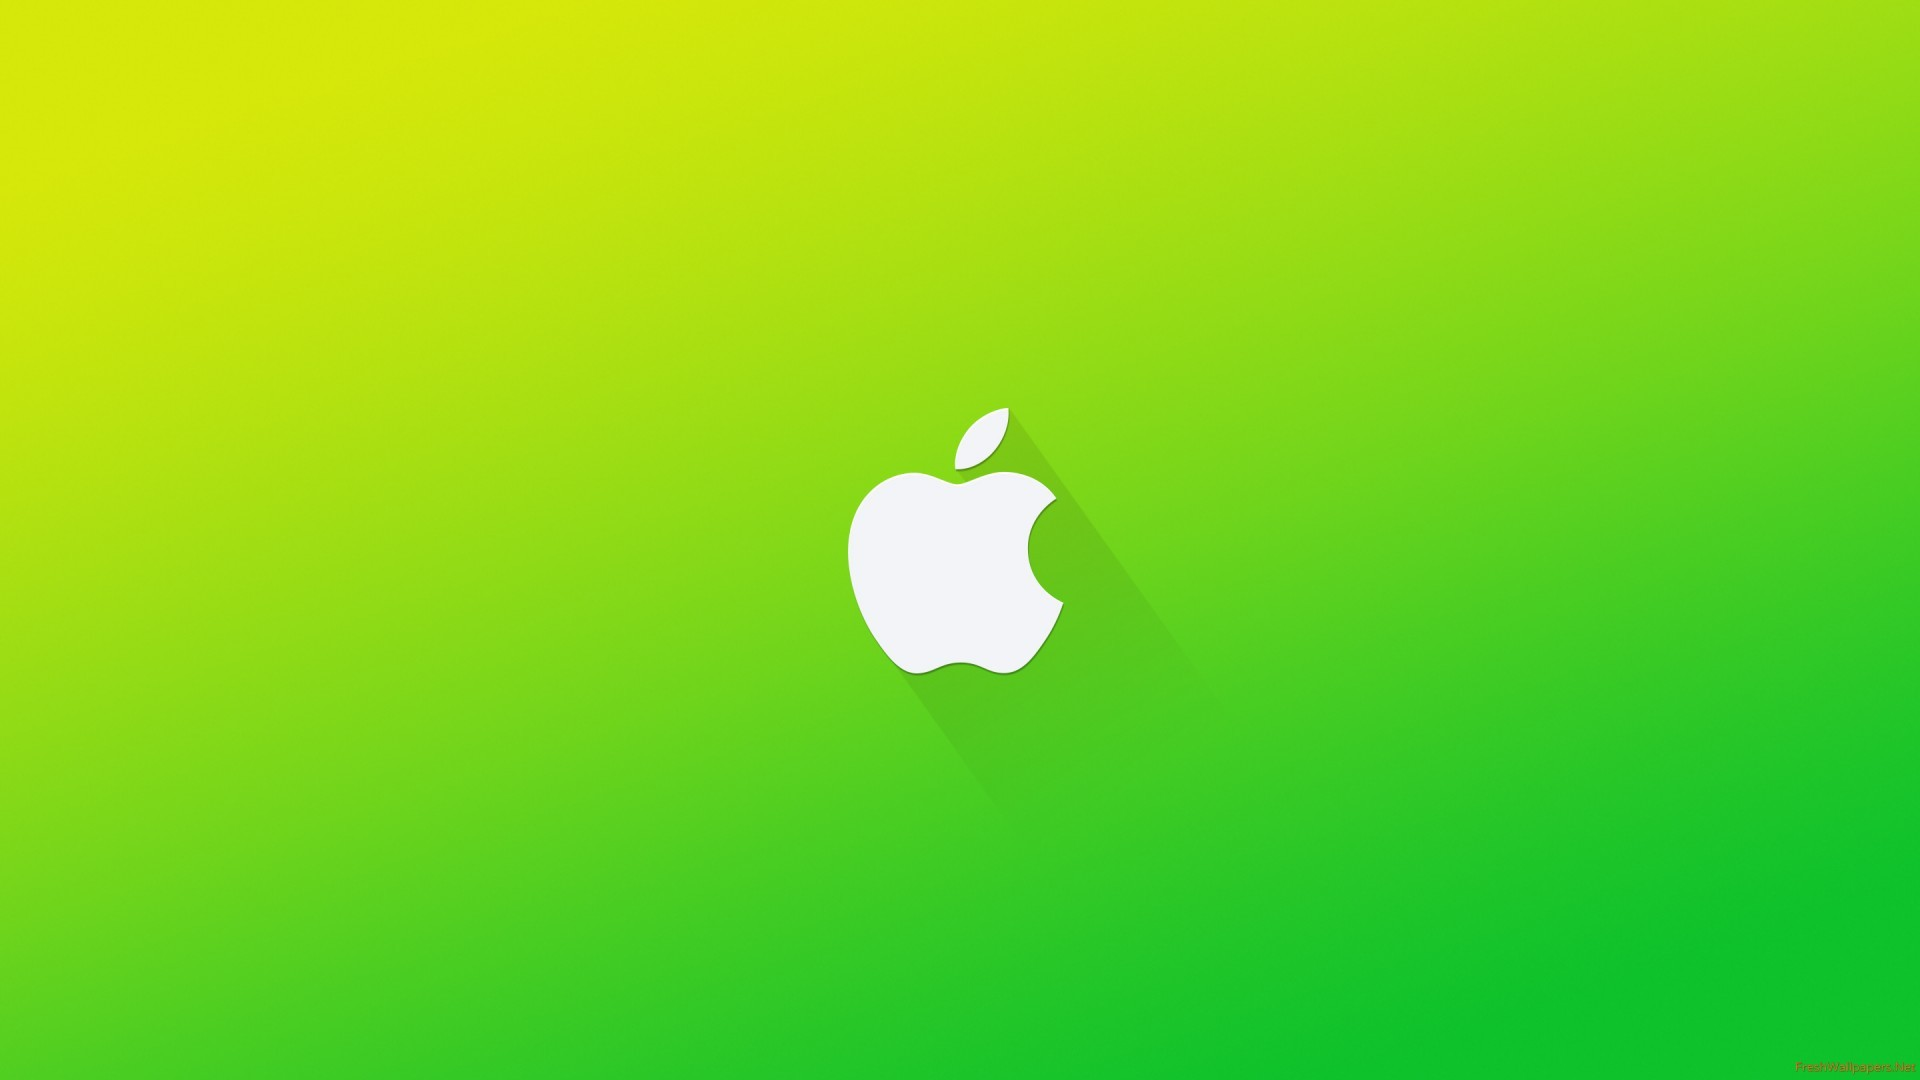 Apple Logo Hd Wallpapers For Iphone 1920 1080 Apple Logo: Apple Logo HD Wallpaper (78+ Images